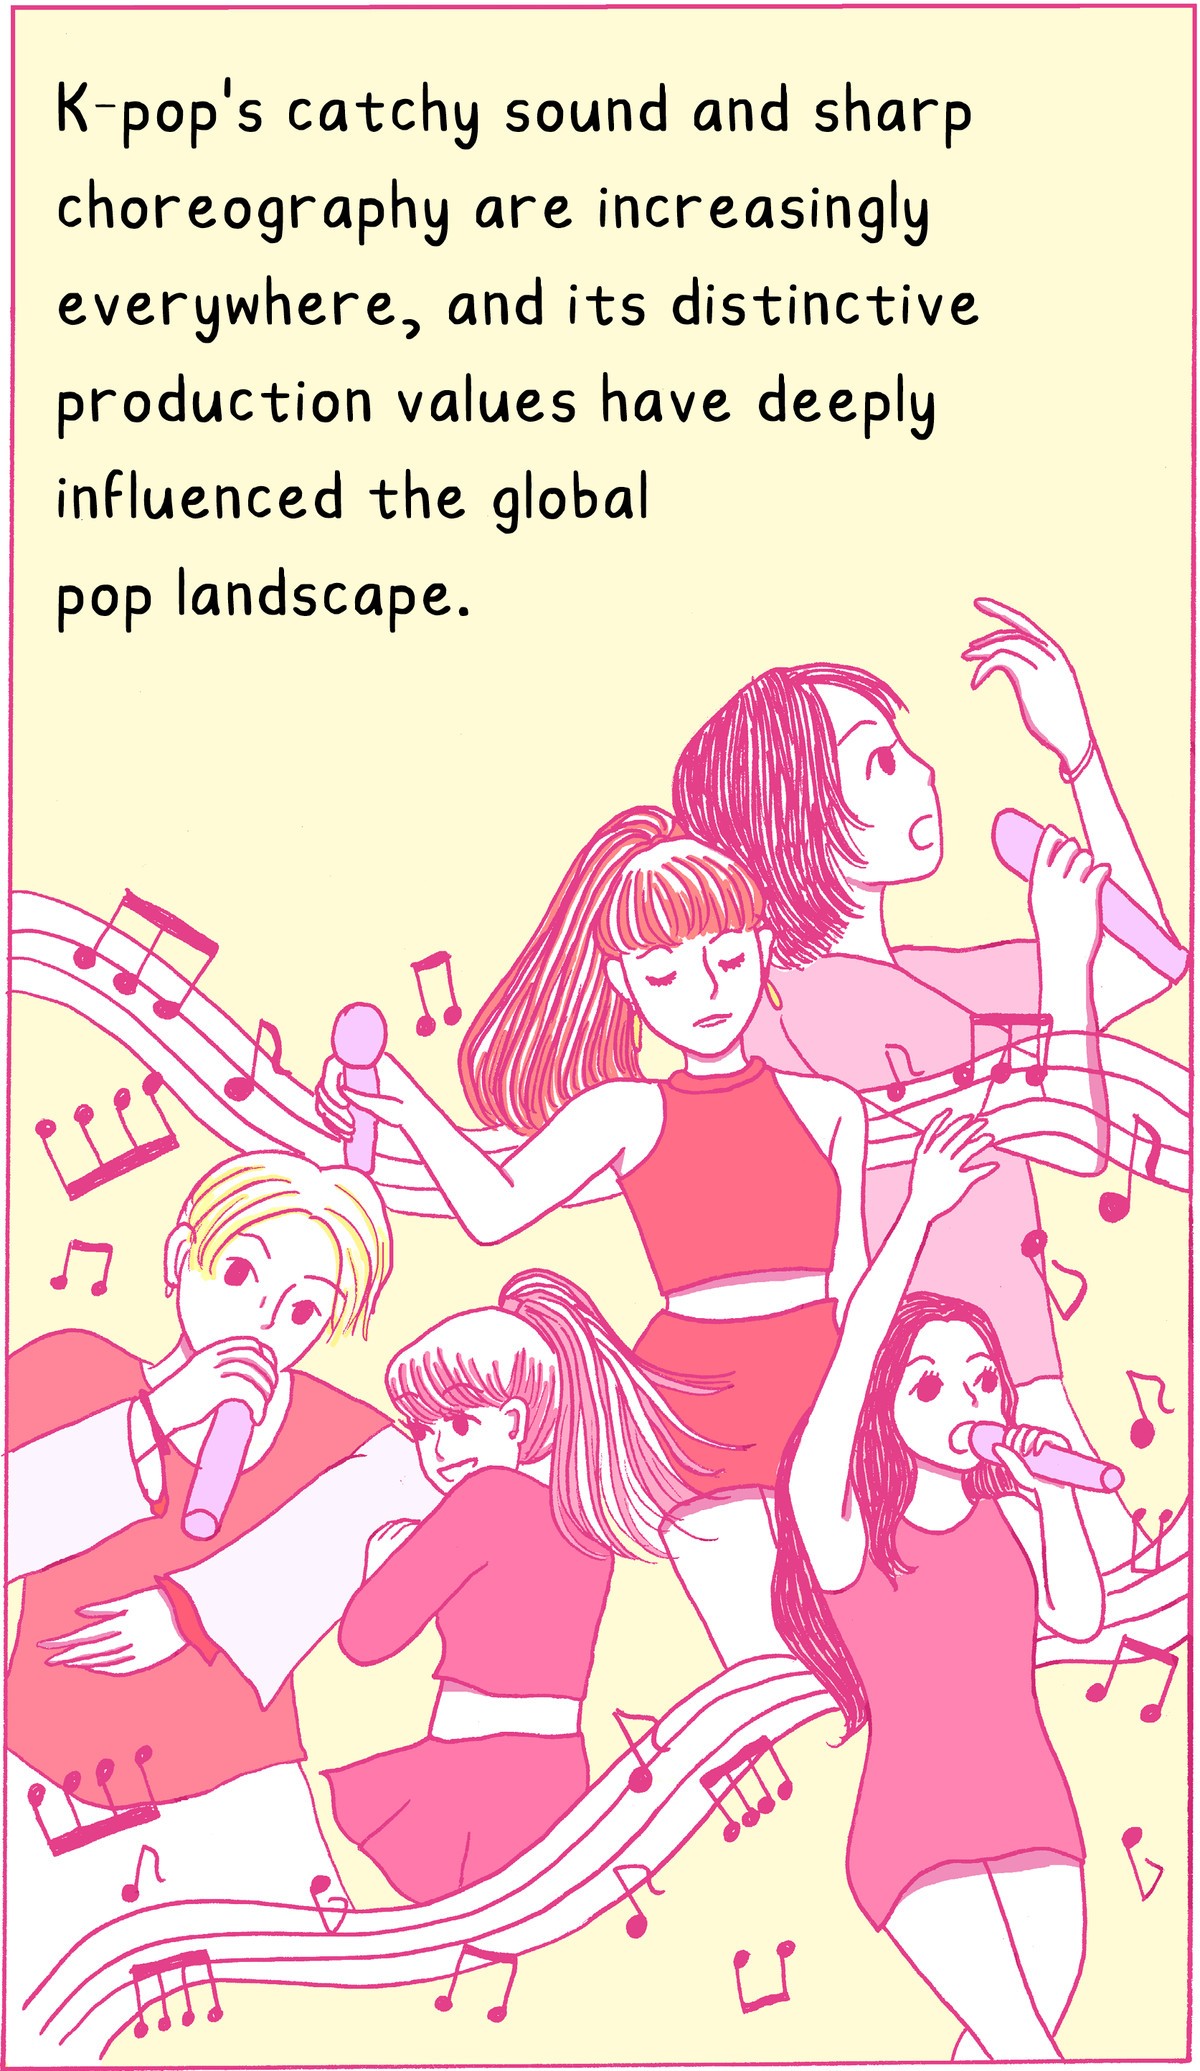 K-pop's catchy sound and sharp choreography are increasingly everywhere, and its distinctive production values have deeply influenced the global pop landscape.